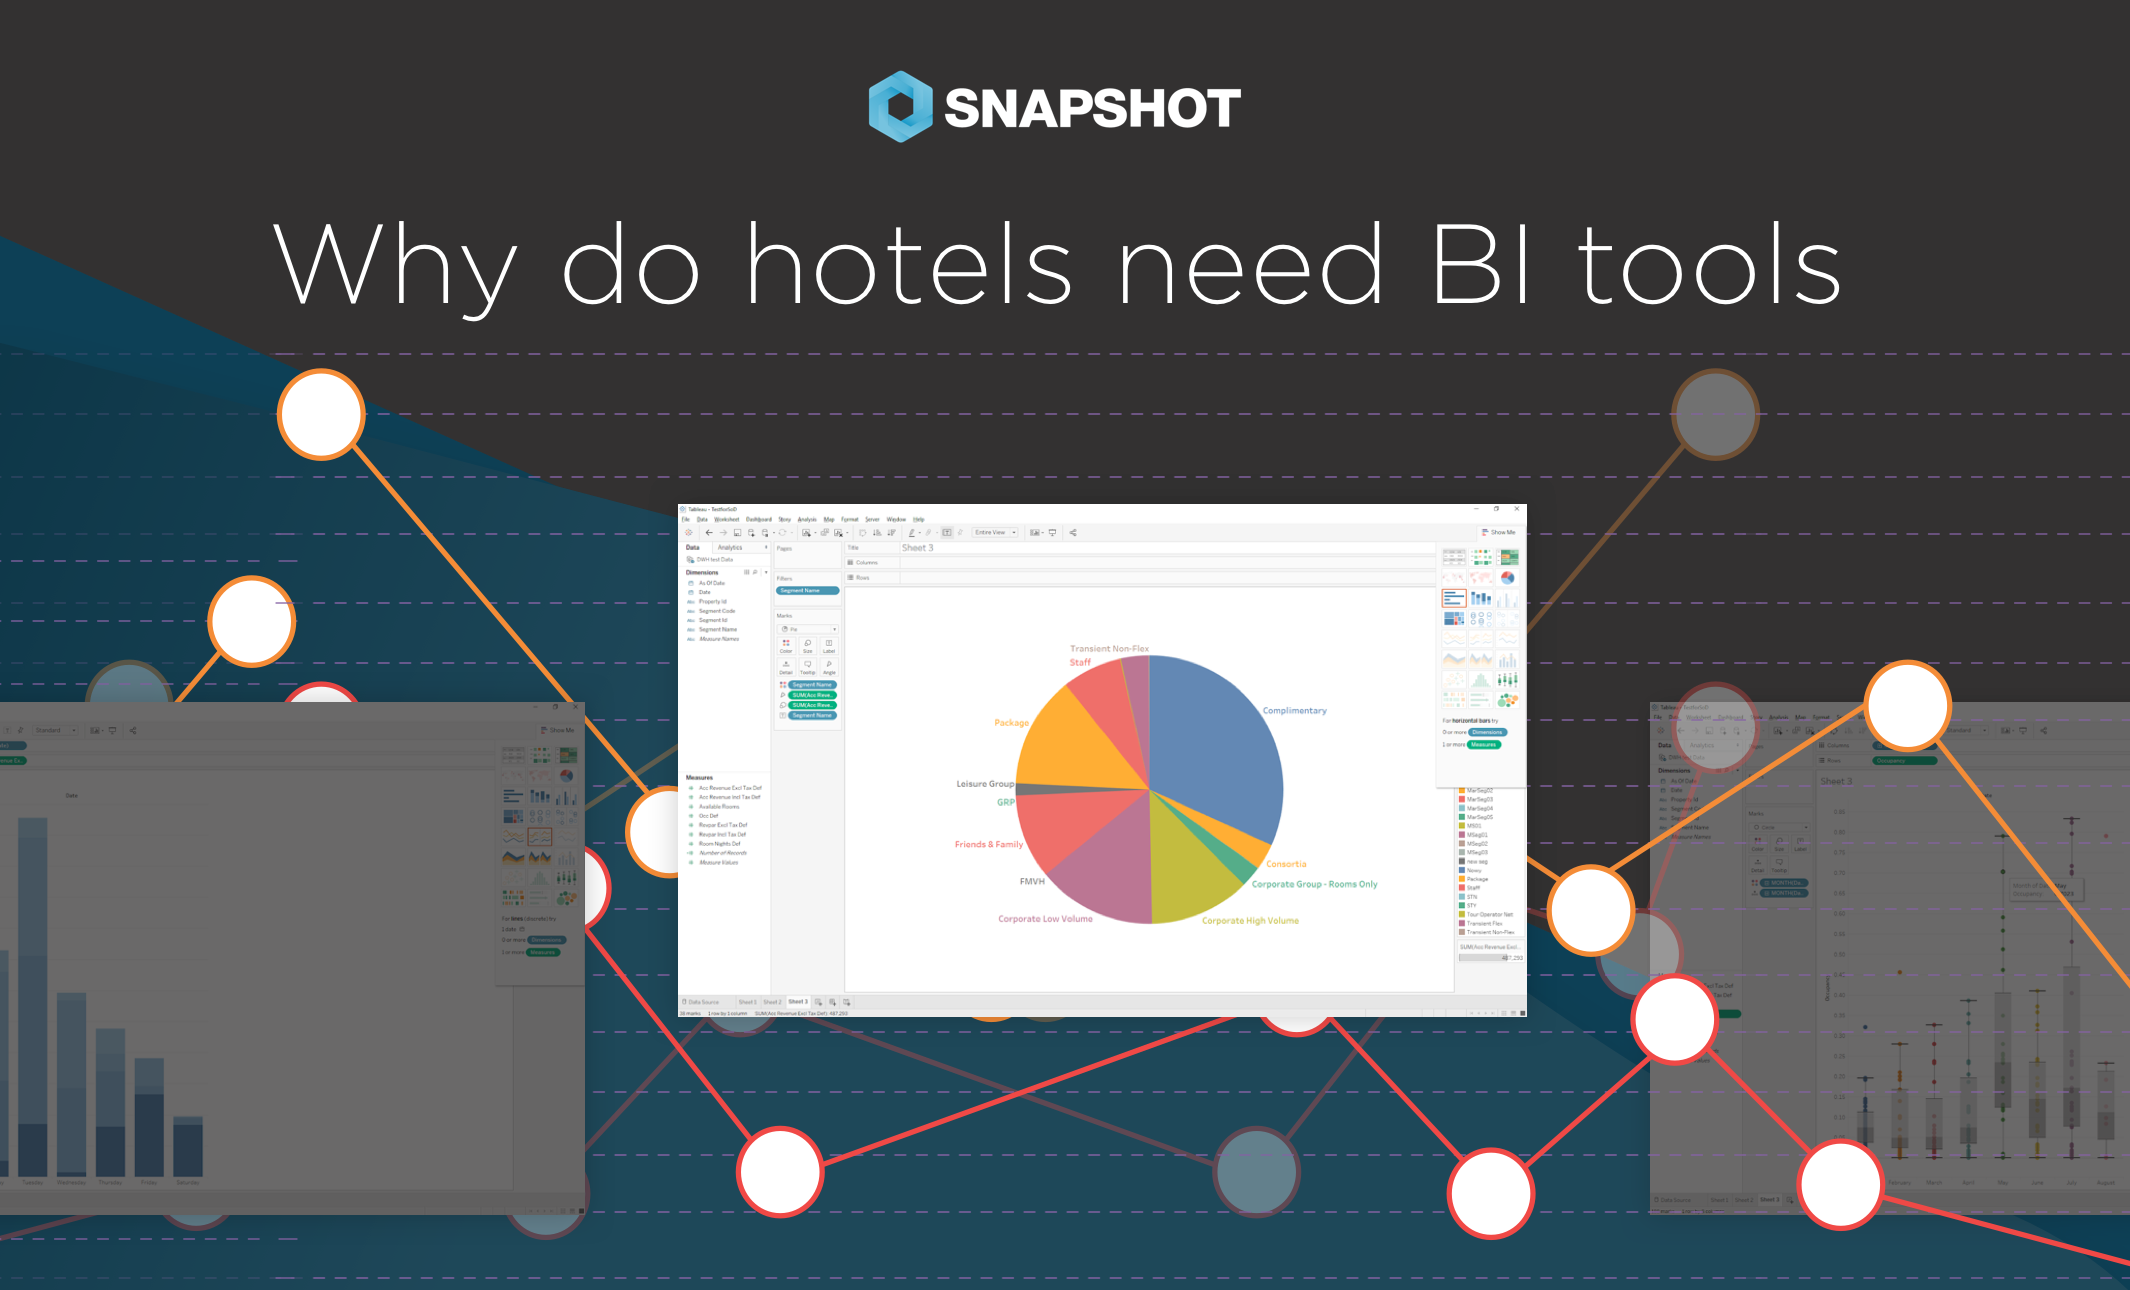 Why do hotels need BI tools?